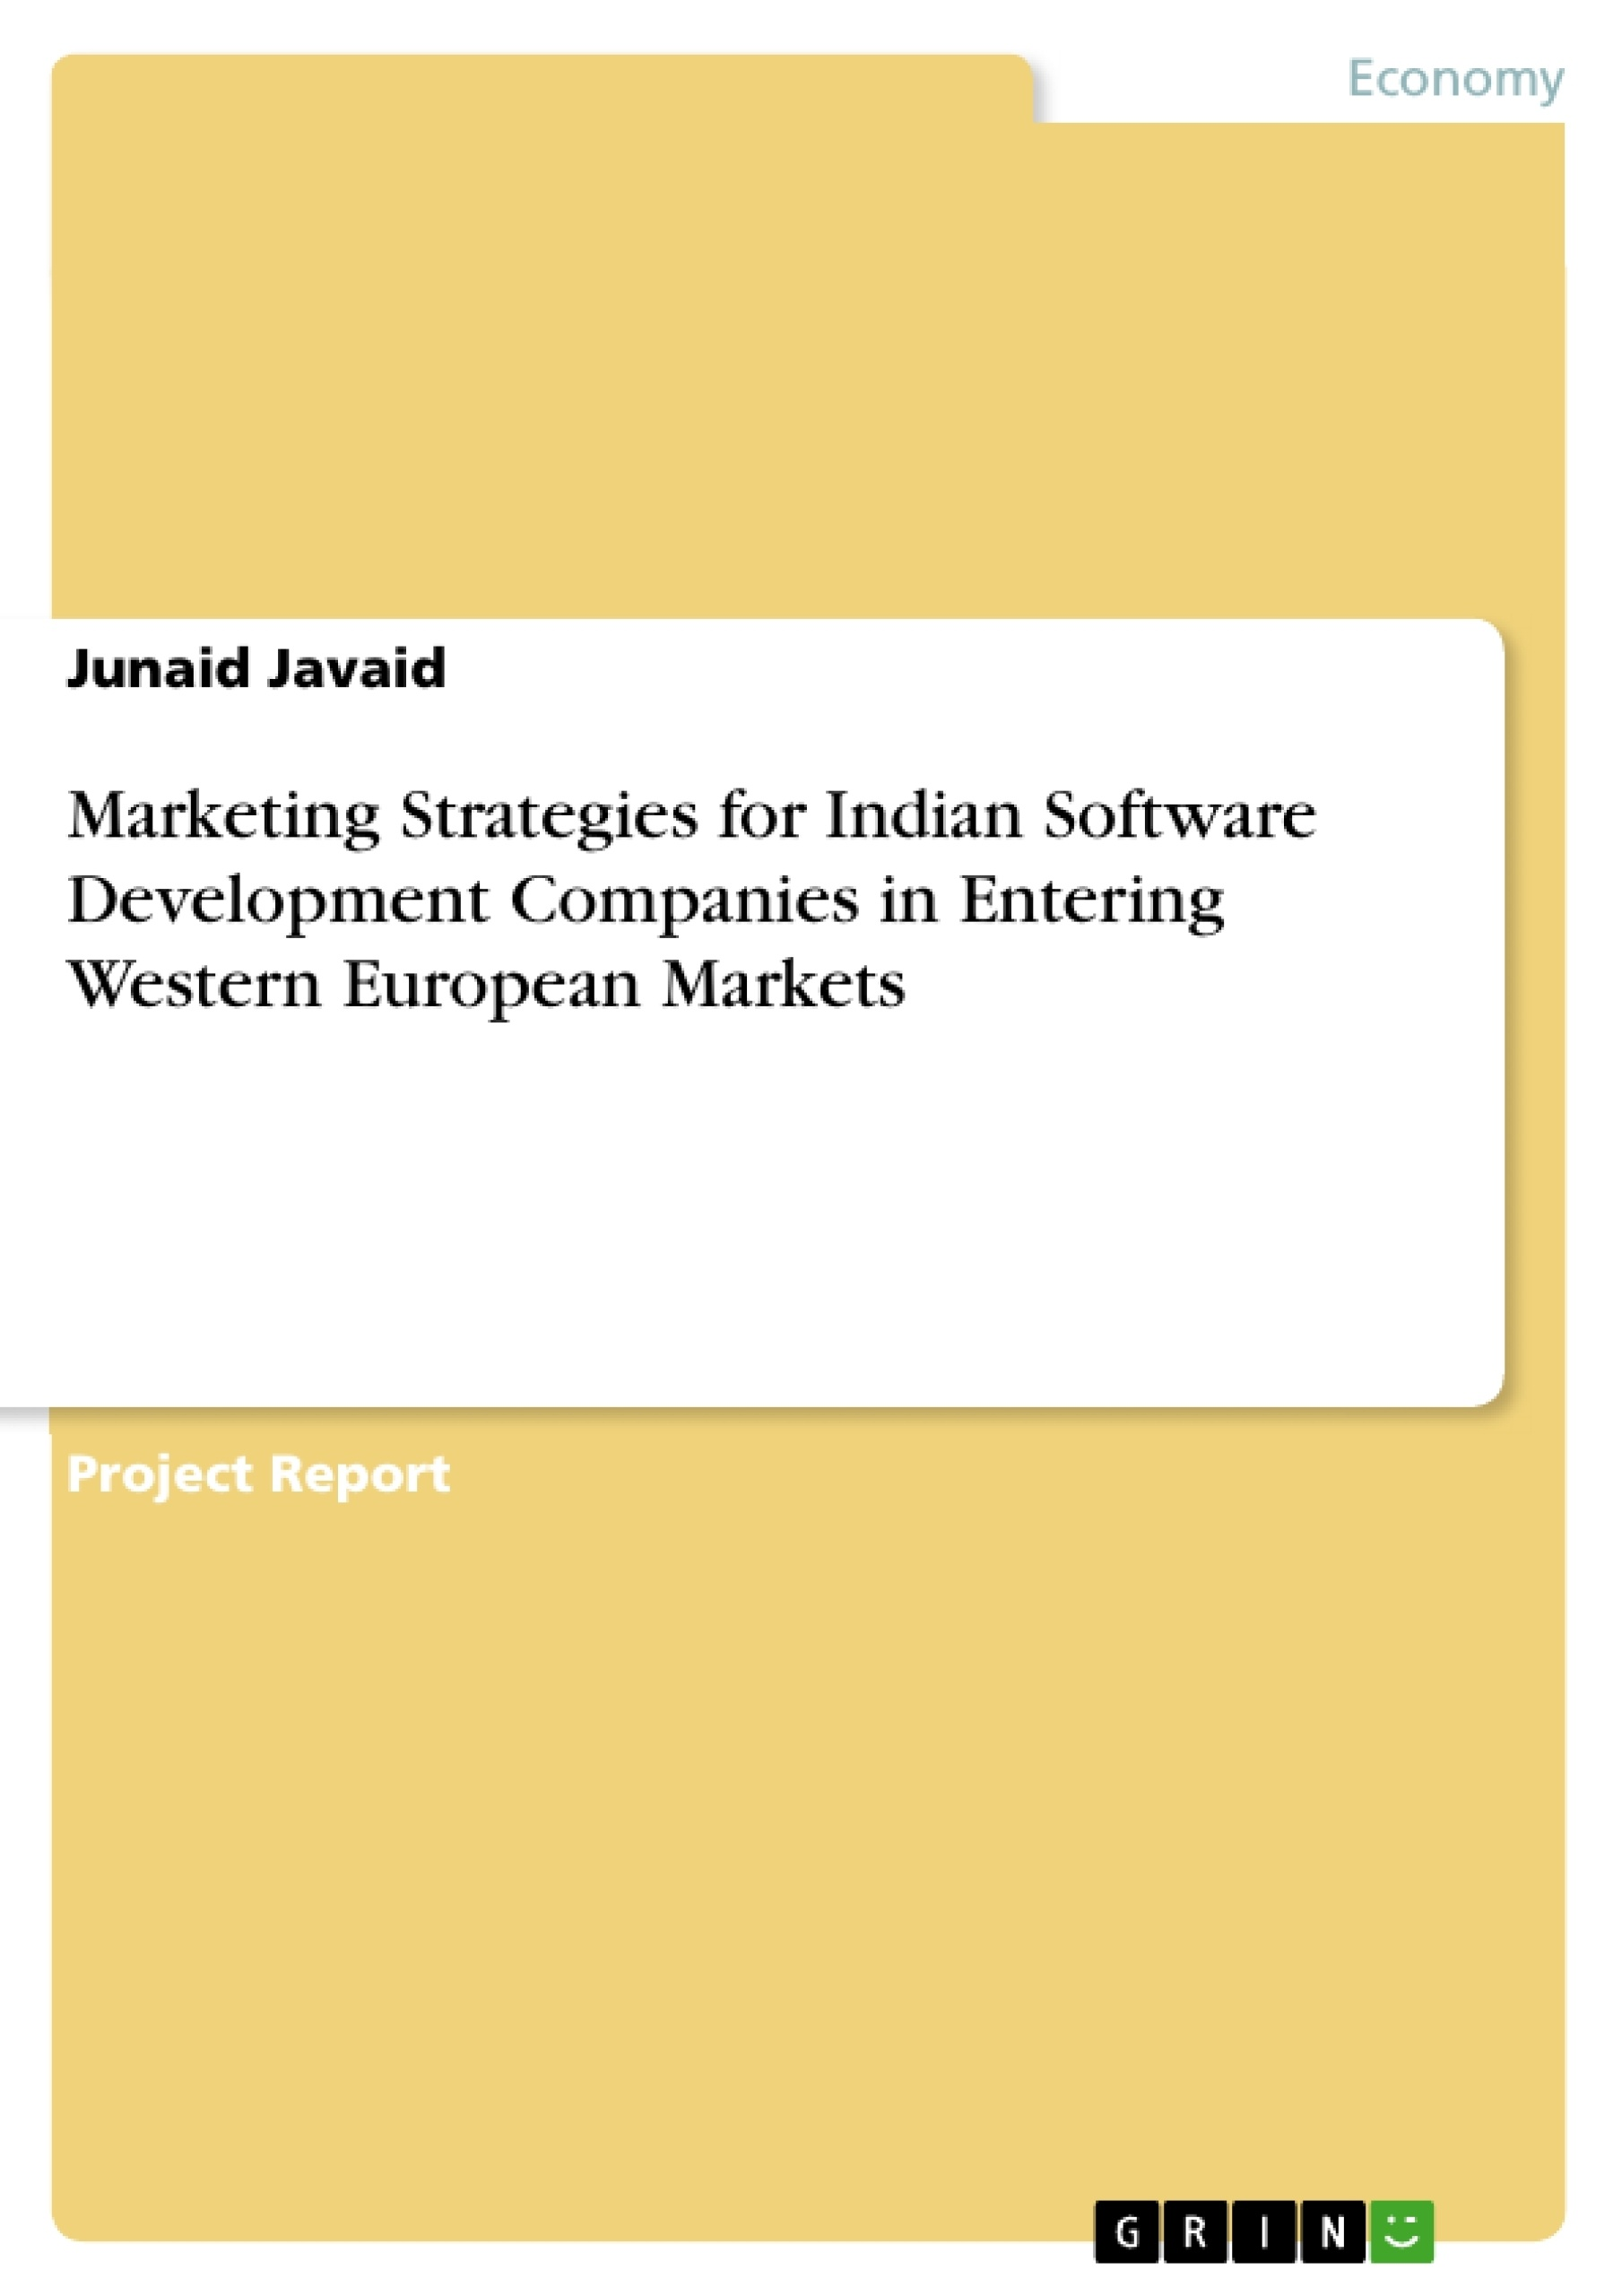 Software Developer Companies In Grin Marketing Strategies For Indian Software Development Companies In Entering Western European Markets